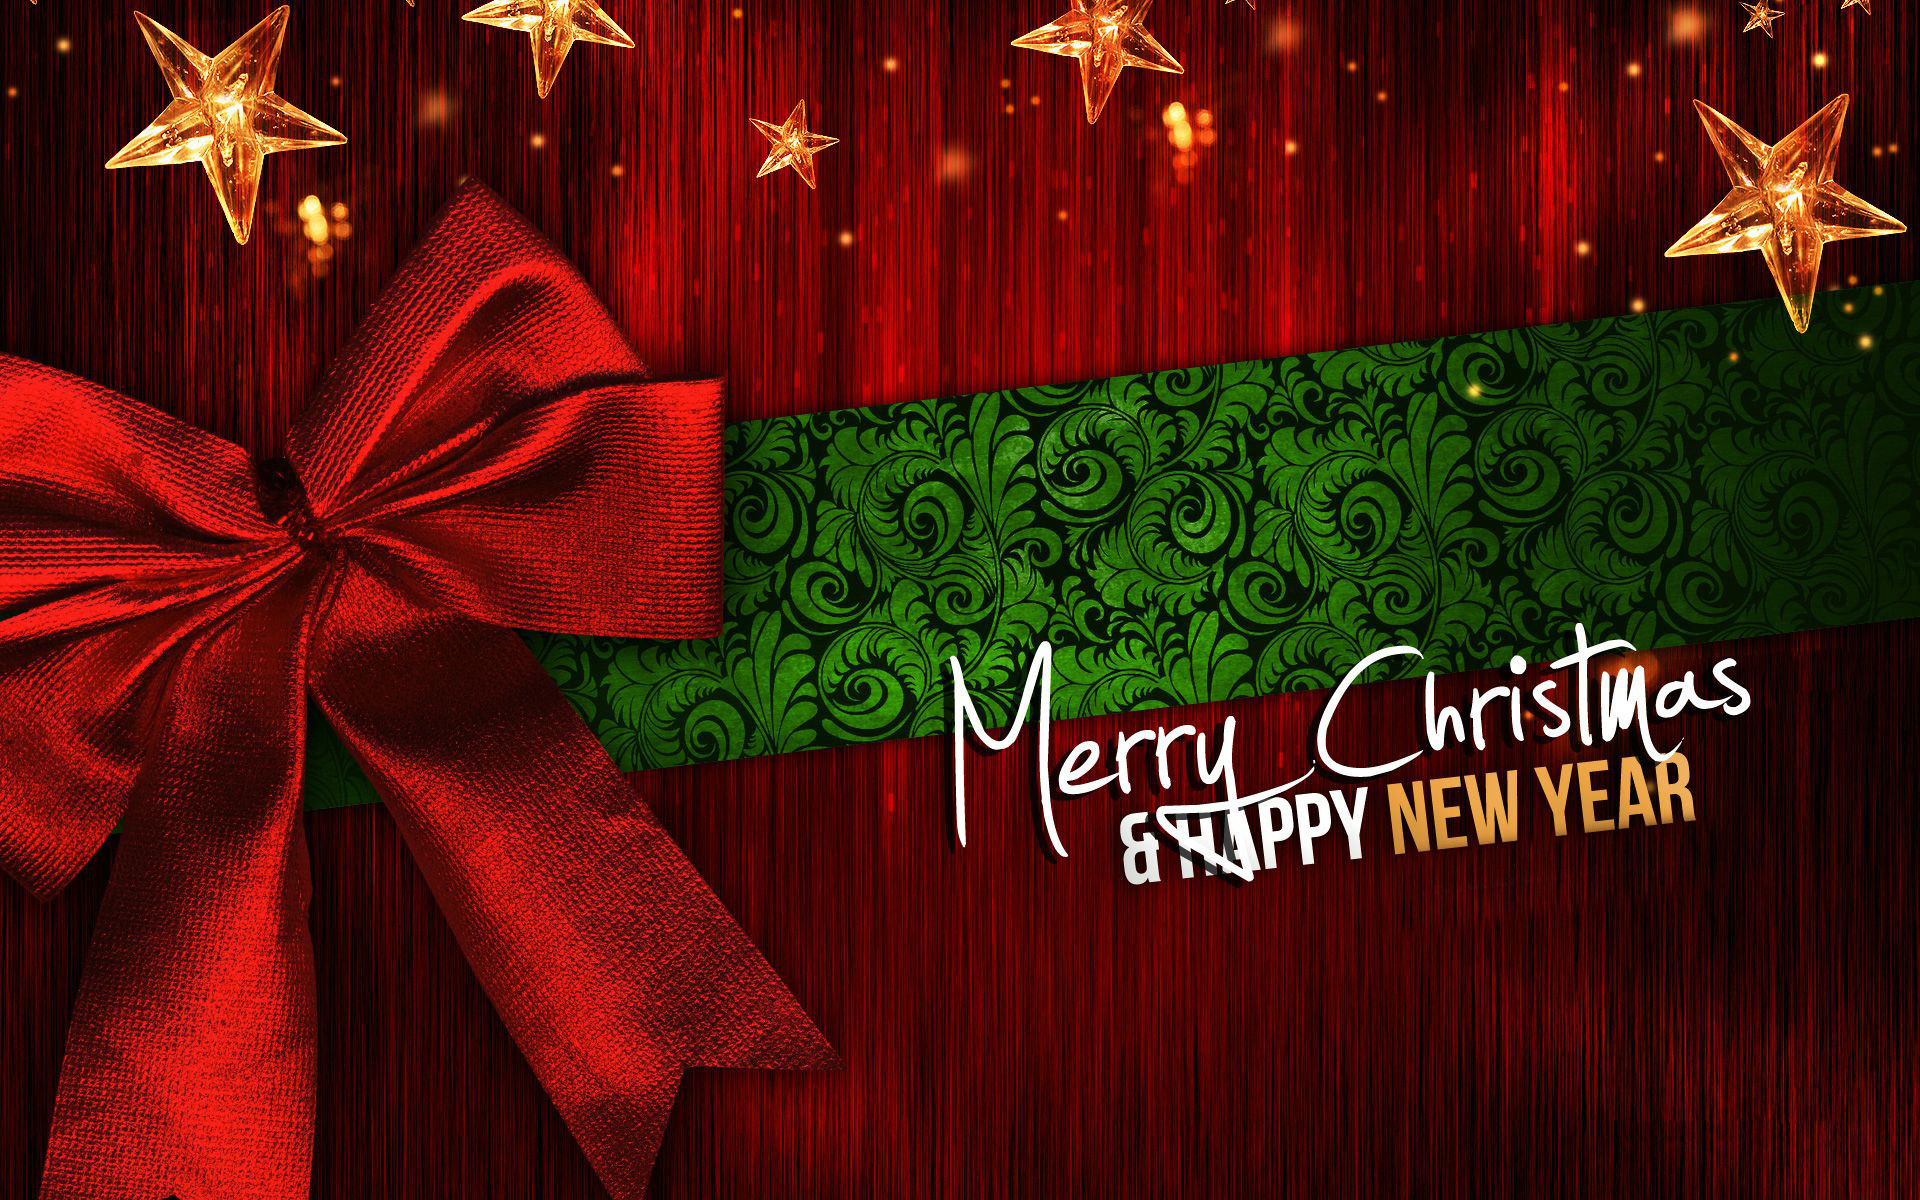 1920x1200 merry christmas and happy new year hd wallpapers